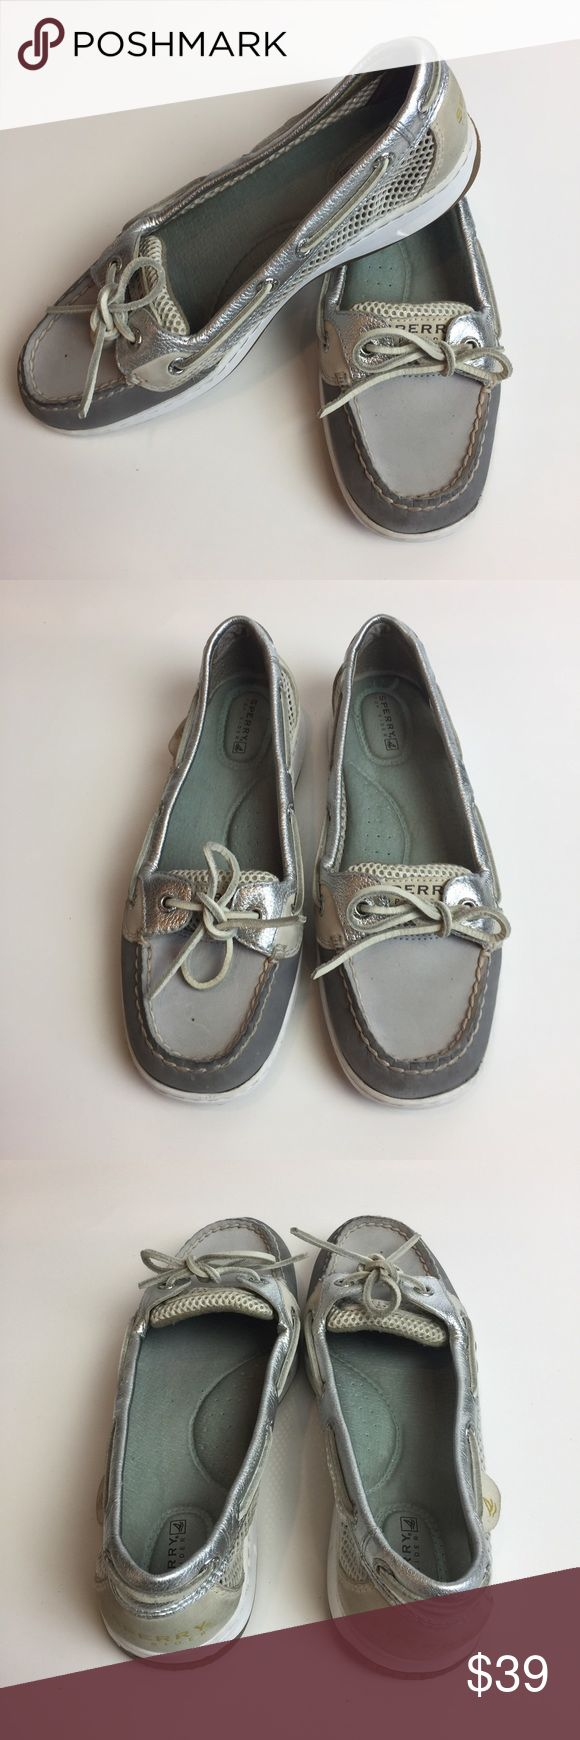 •• Sperry Top Sider Angelfish Metallic Boat Shoes Women's size 7.5 designer boat shoes. Minor wear see pictures overall in good condition. Only have been worn a handful of times. These shoes go with EVERYTHING! (LLR3-179)  Material: Leather Color: Gray & Metallic Silver Sperry Top-Sider Shoes Flats & Loafers